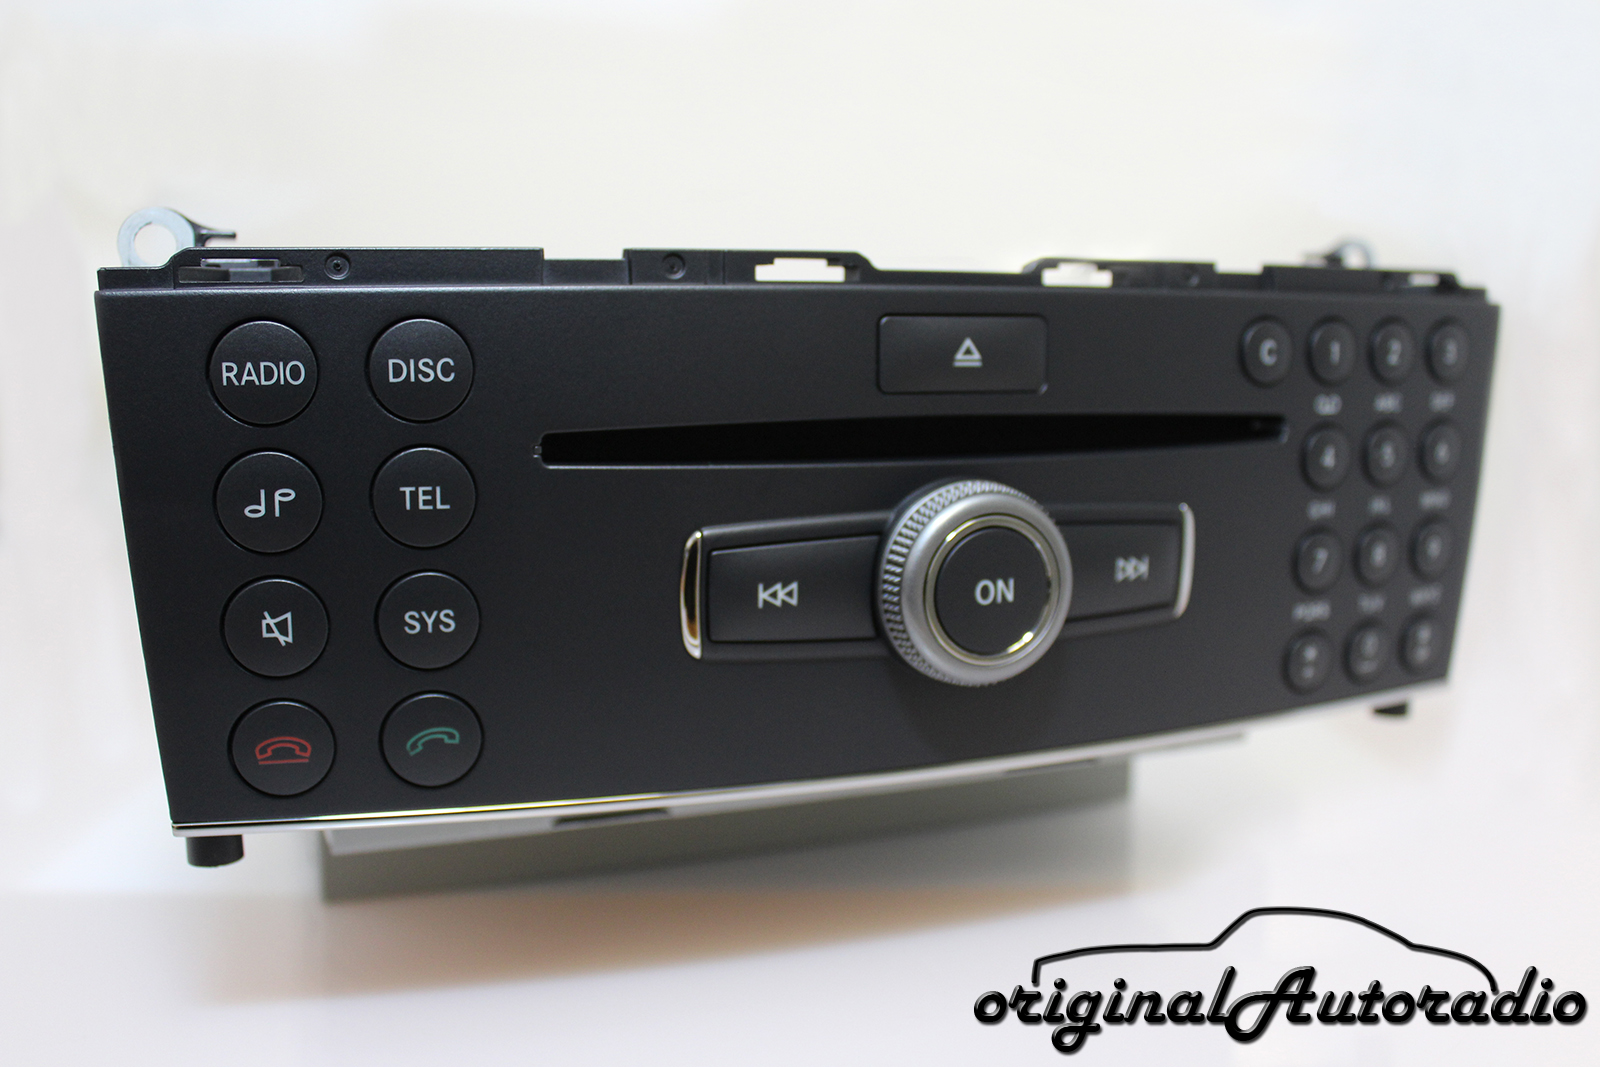 Original-Autoradio de - Mercedes W204 Radio Audio 20 CD Headunit MP3